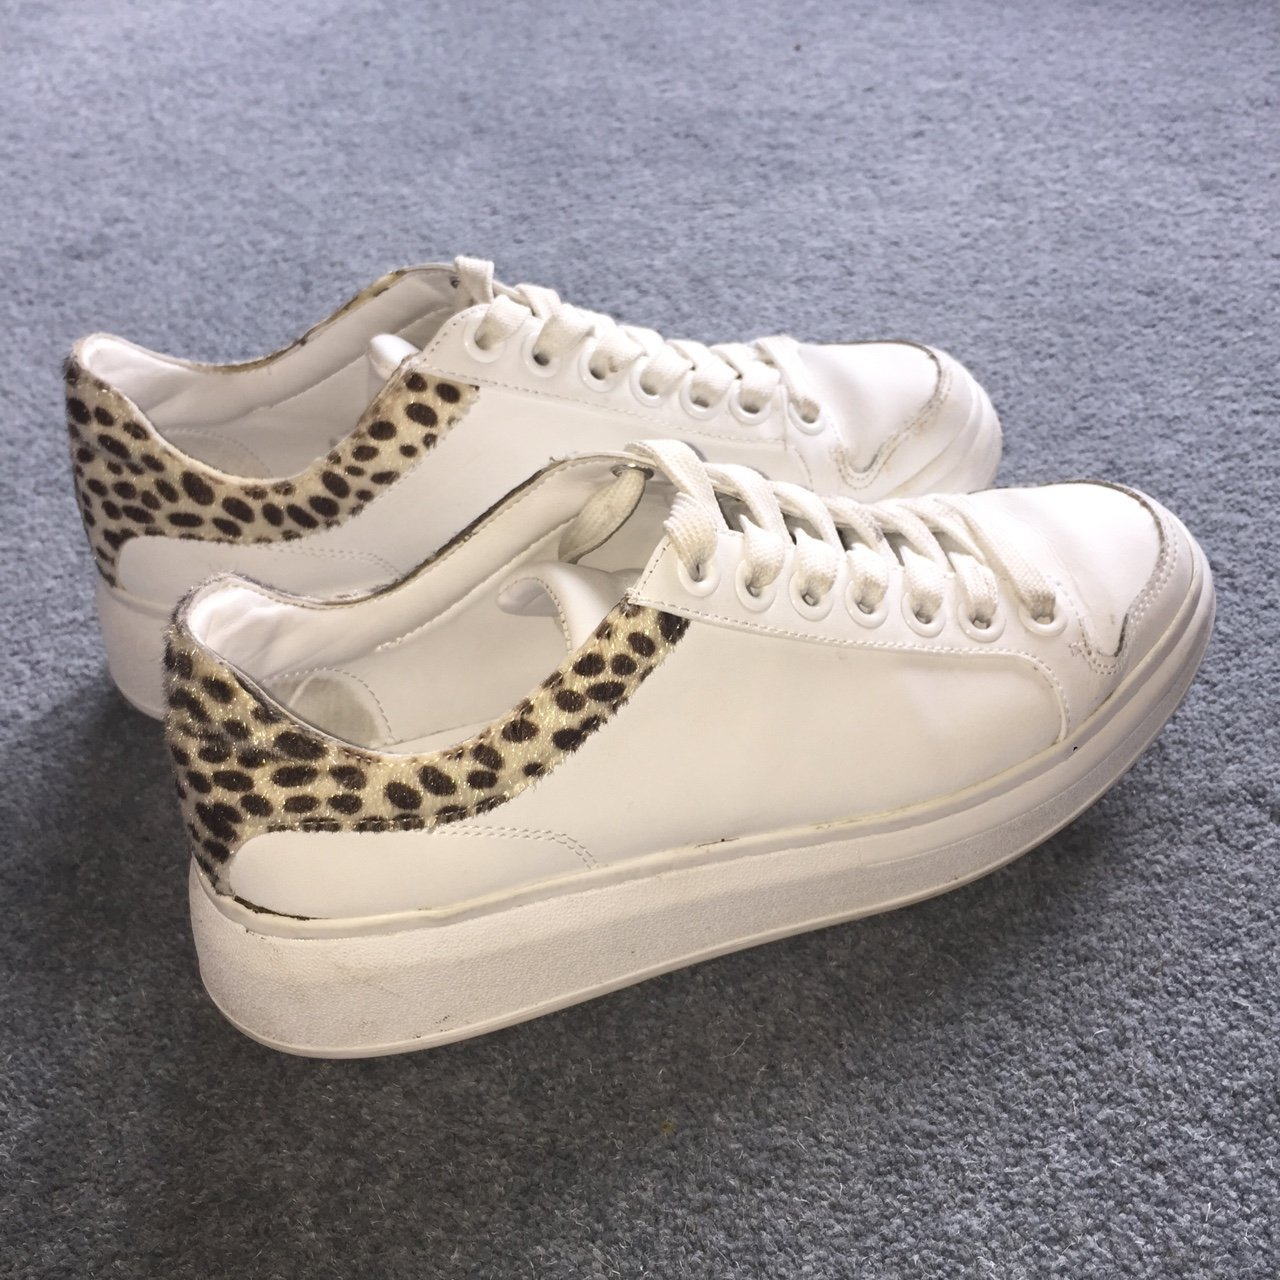 e1c5175437e8 ZARA white platform sneakers with Leopard print. Size 5. for - Depop